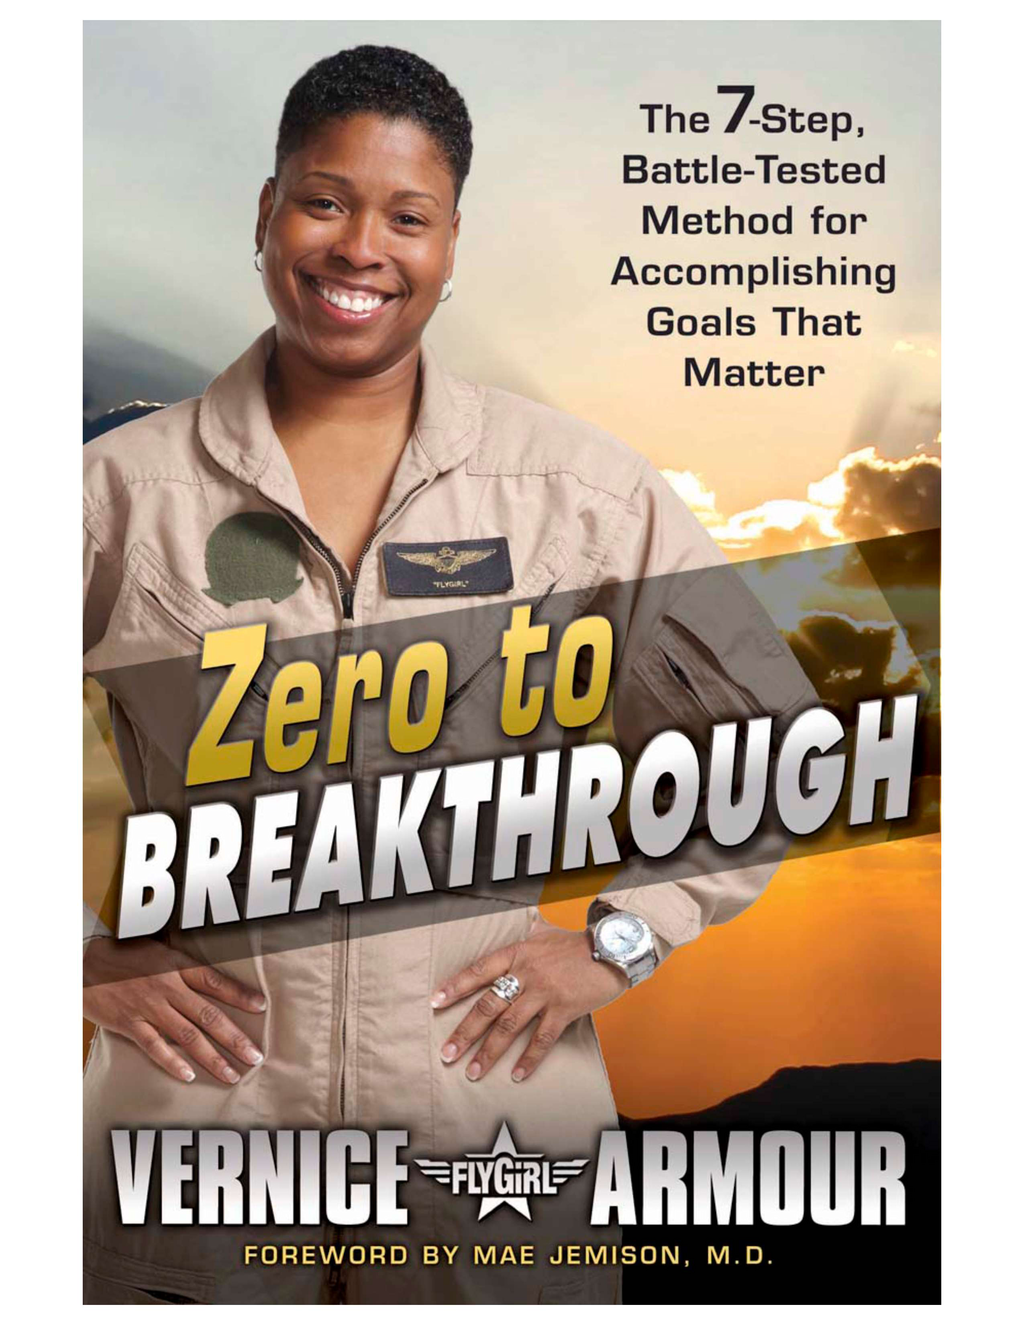 Zero to Breakthrough: The 7-Step, Battle-Tested Method for Accomplishing Goals that Matter By: Vernice Armour